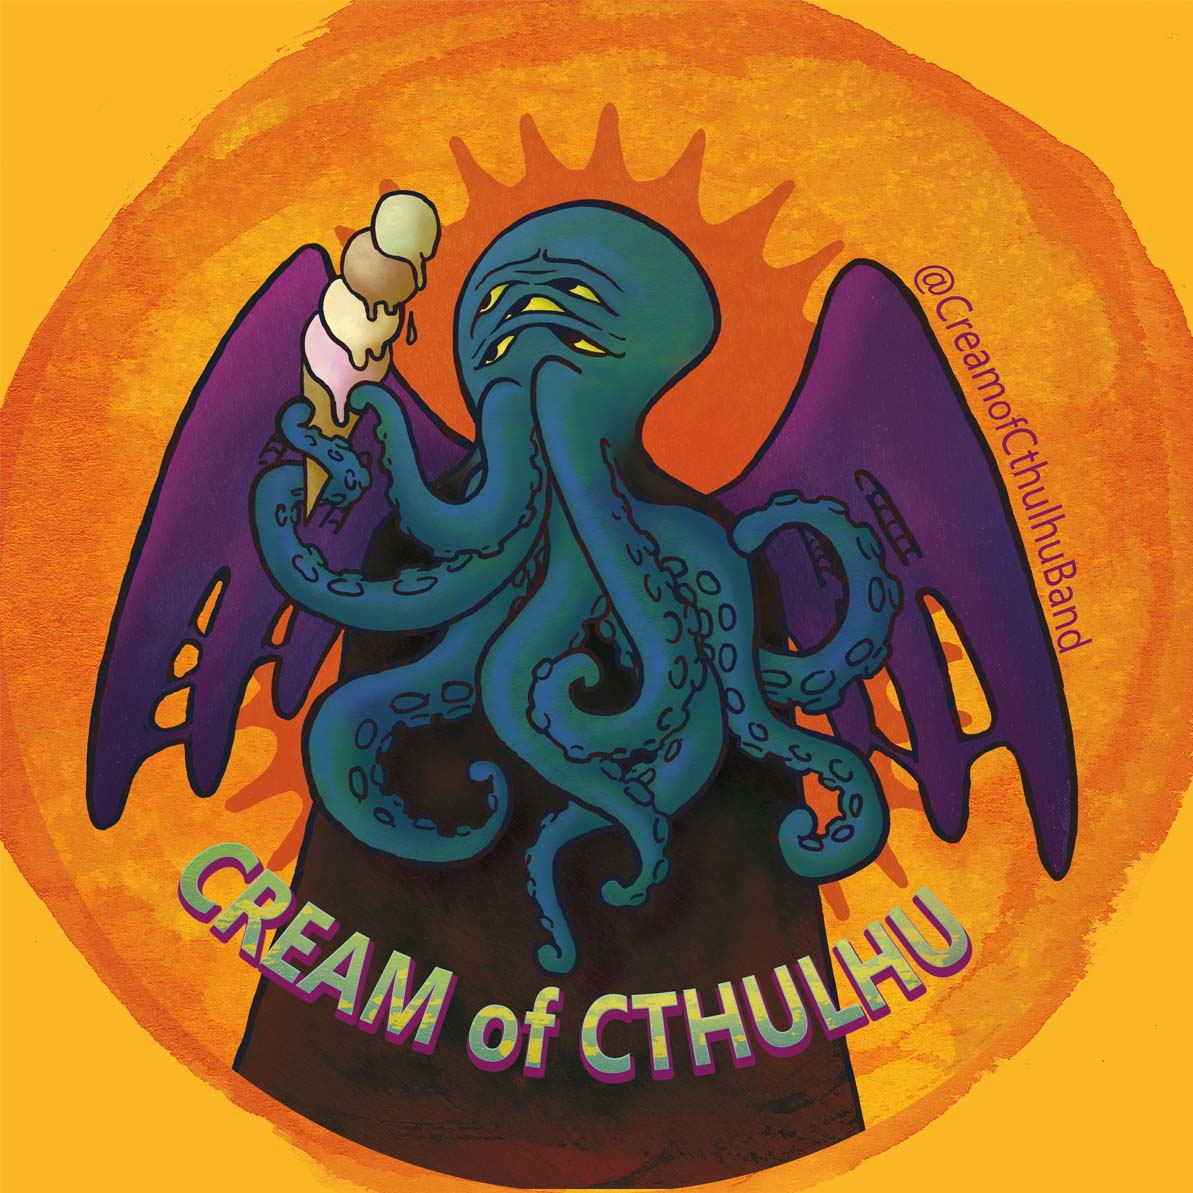 Cream Of Cthulhu